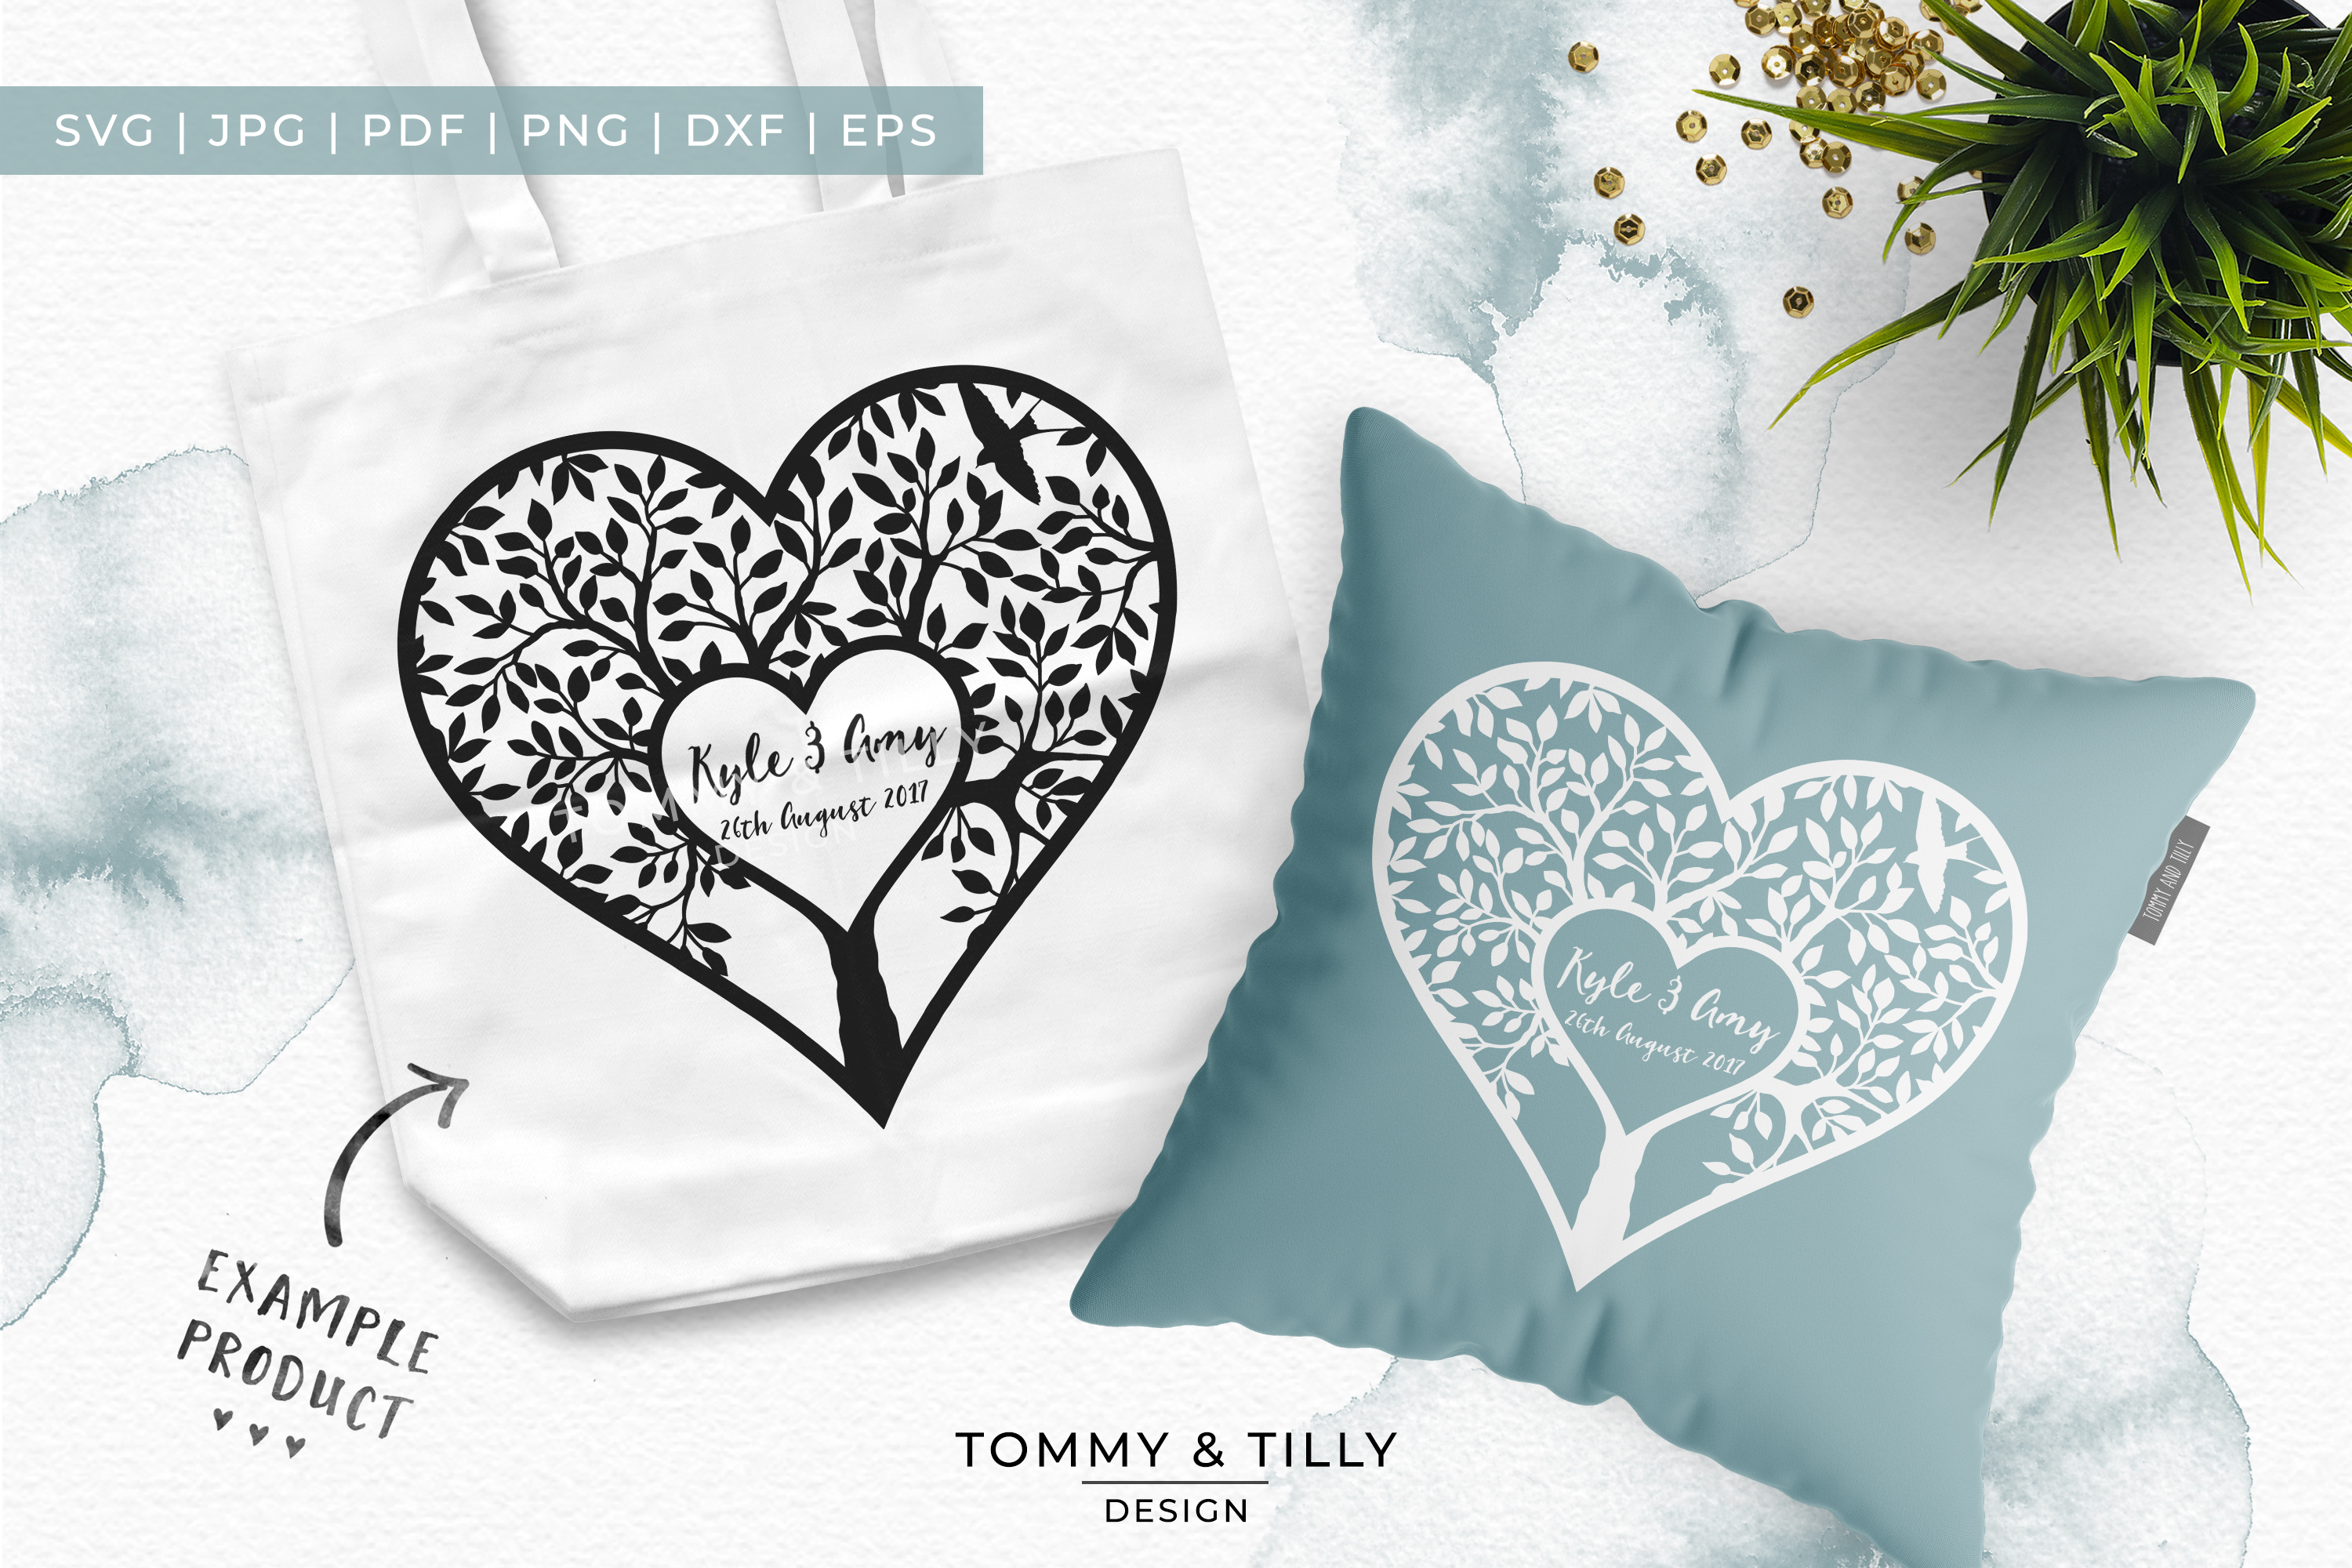 Monogram Heart Tree x 3 - Papercut Template SVG EPS DXF PNG example image 2